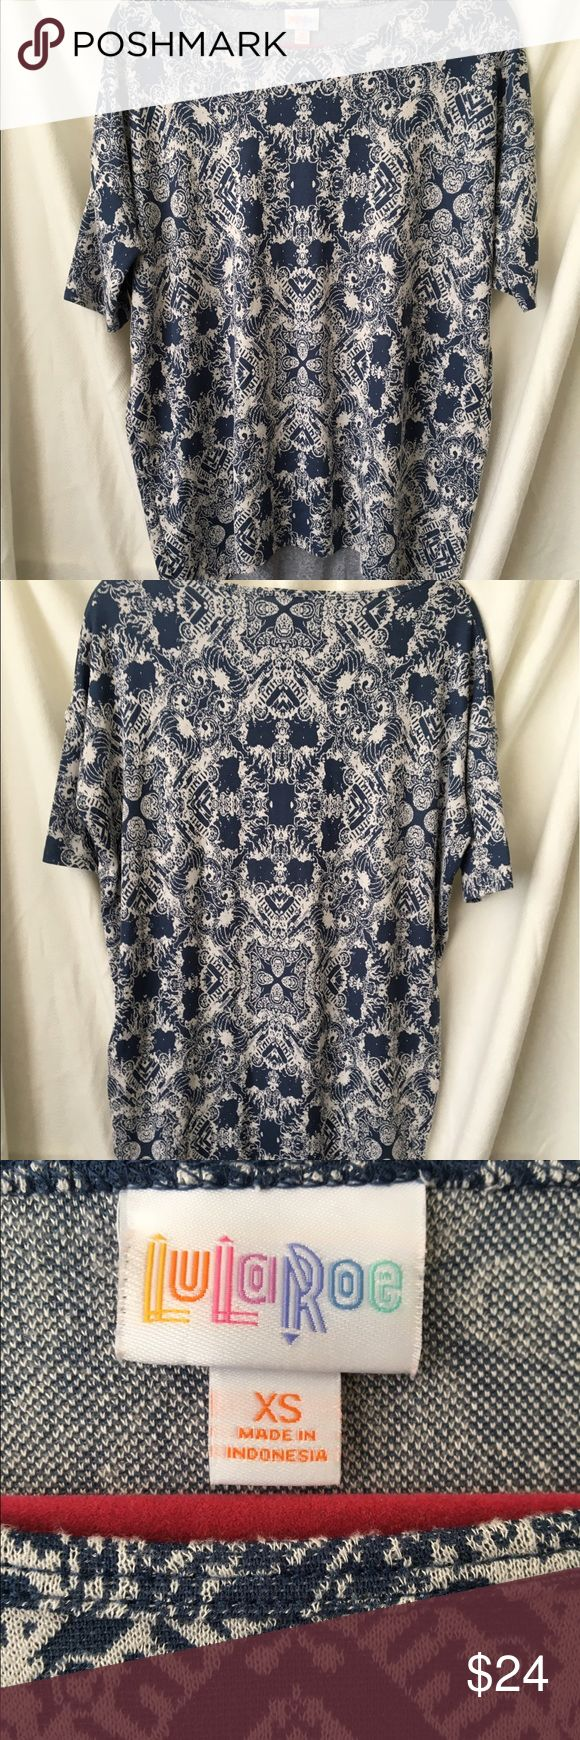 """Lularoe Irma top blue white short sleeve XS Lularoe Irma top size XS, high in front, lower back, short sleeve, blue and white filigree type print. Great condition! Slight dolmain type sleeves. Measurements: armpit to armpit 24.5"""", length 33"""" LuLaRoe Tops Tees - Short Sleeve"""